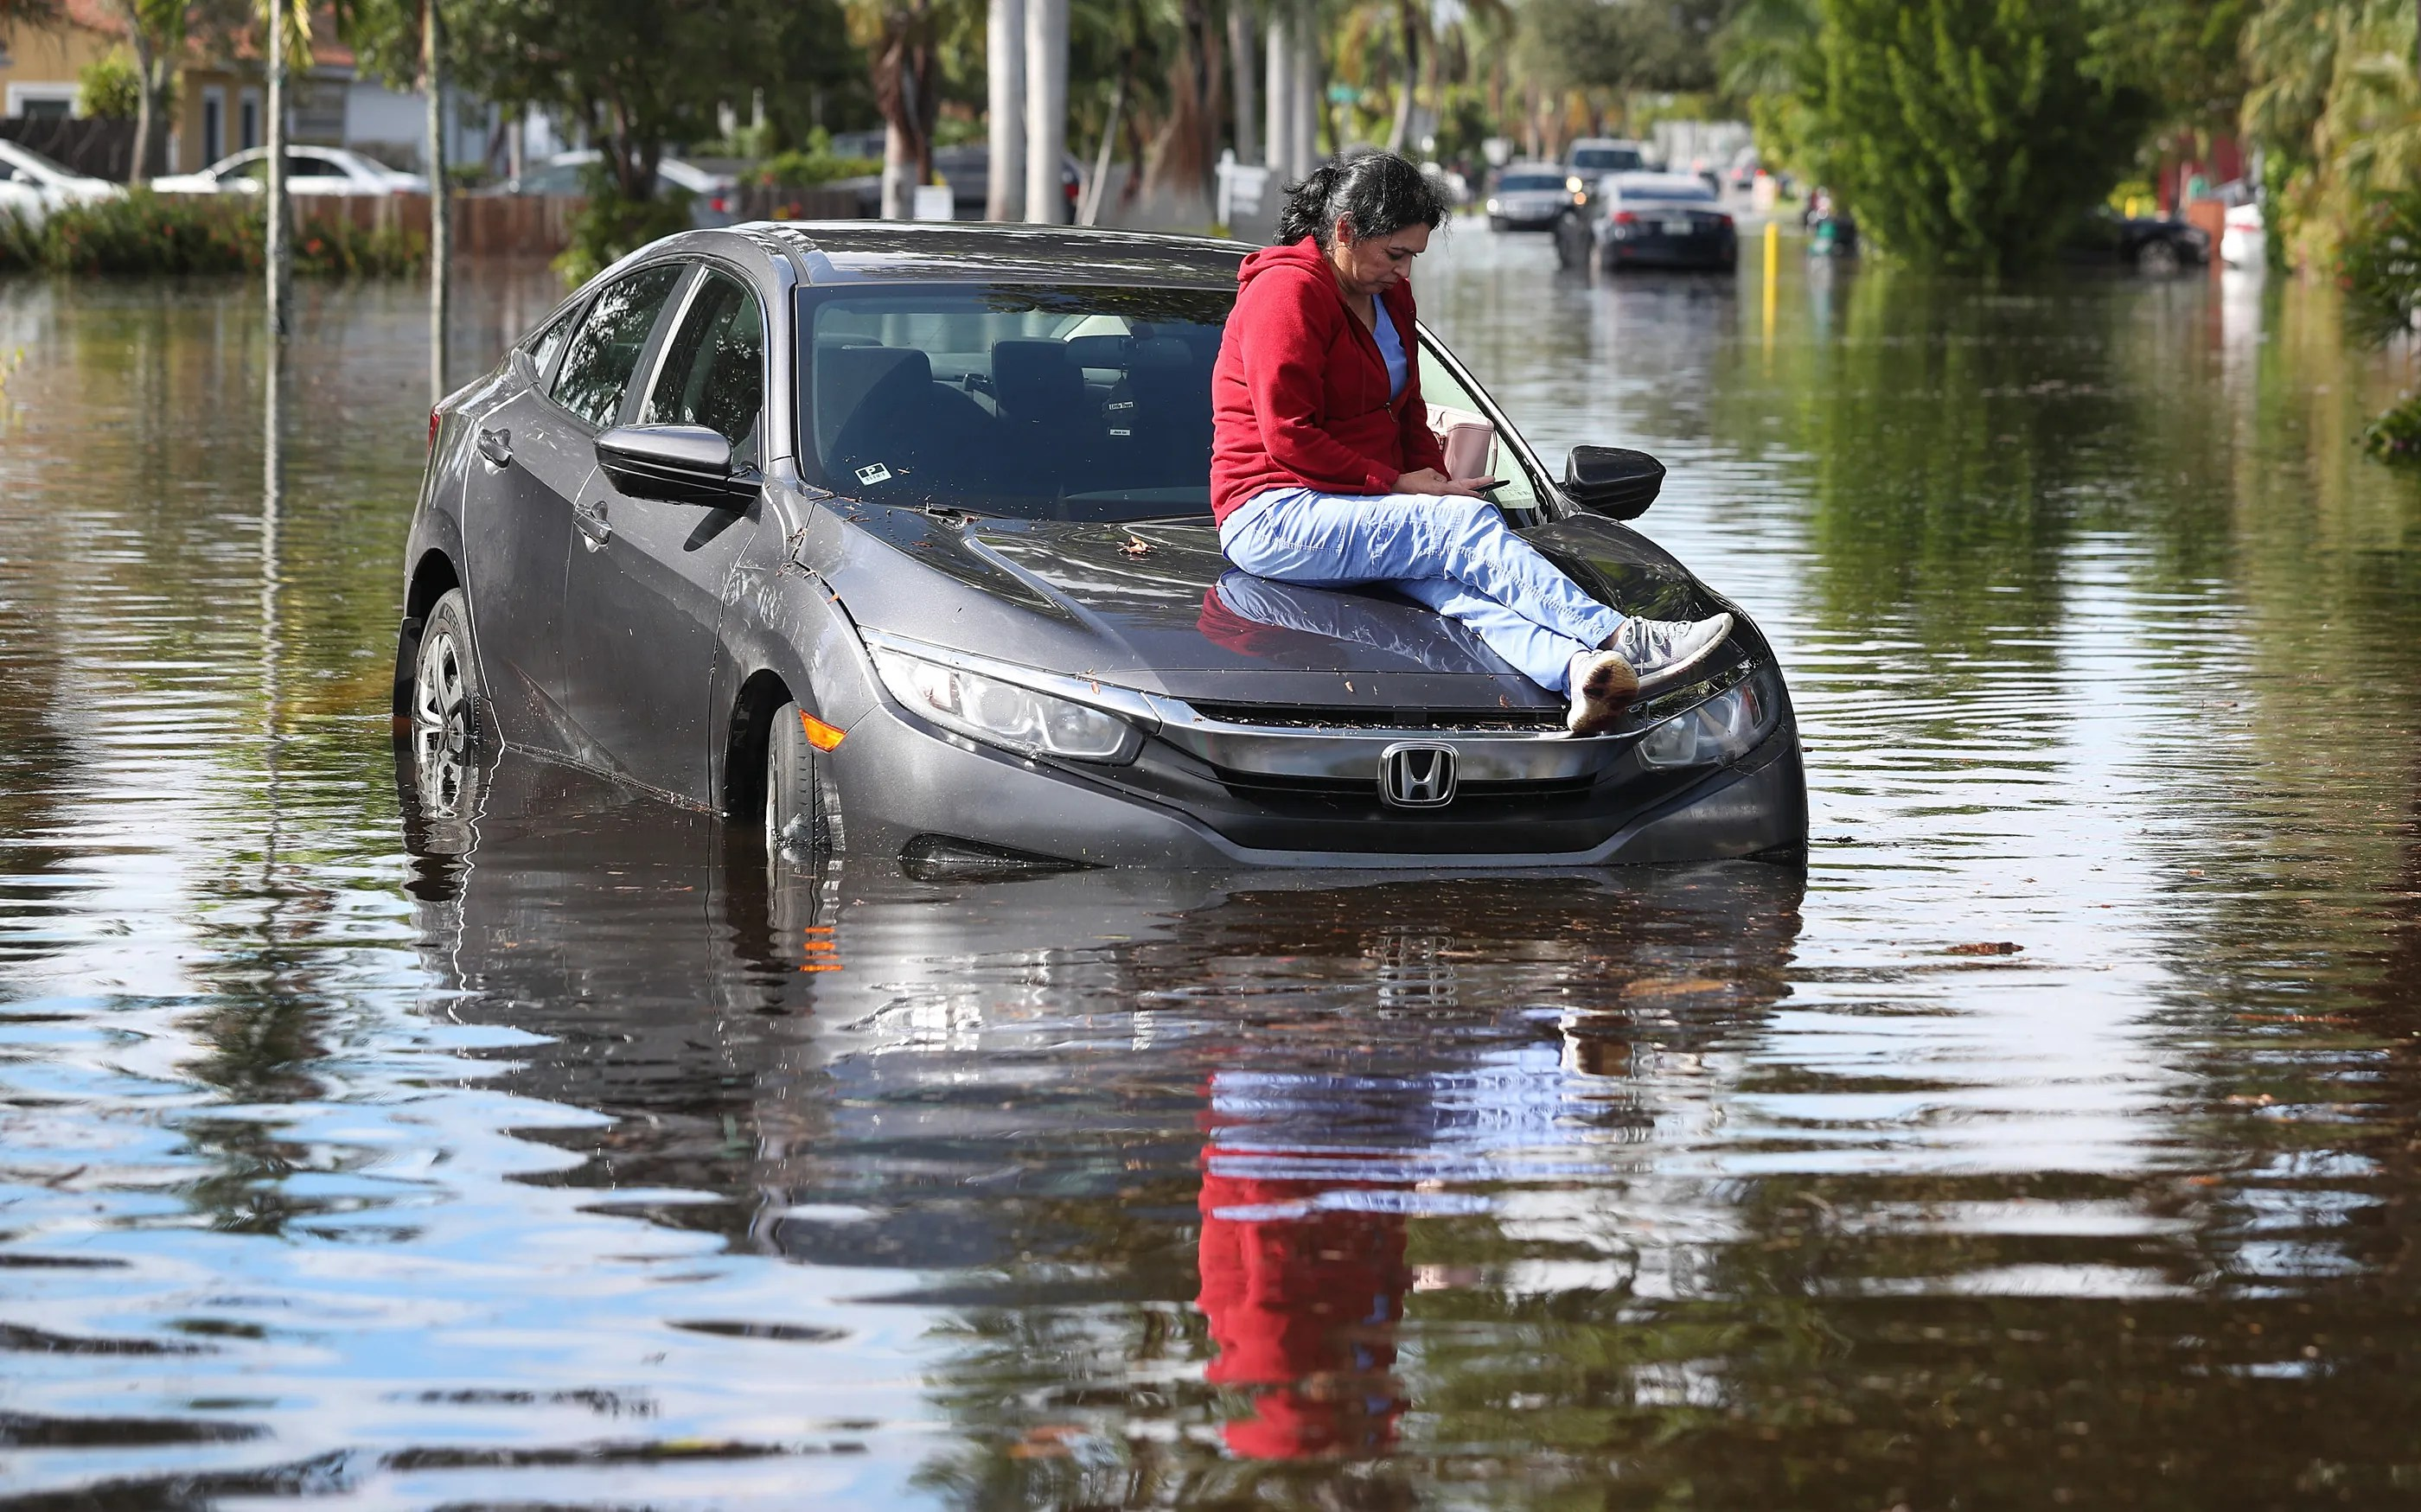 a2a1b0ab 0fcb 452d b35c 261e334c20ea 22534 Flood-prone homeowners could see major rate hikes in FEMA flood insurance changes, new study finds